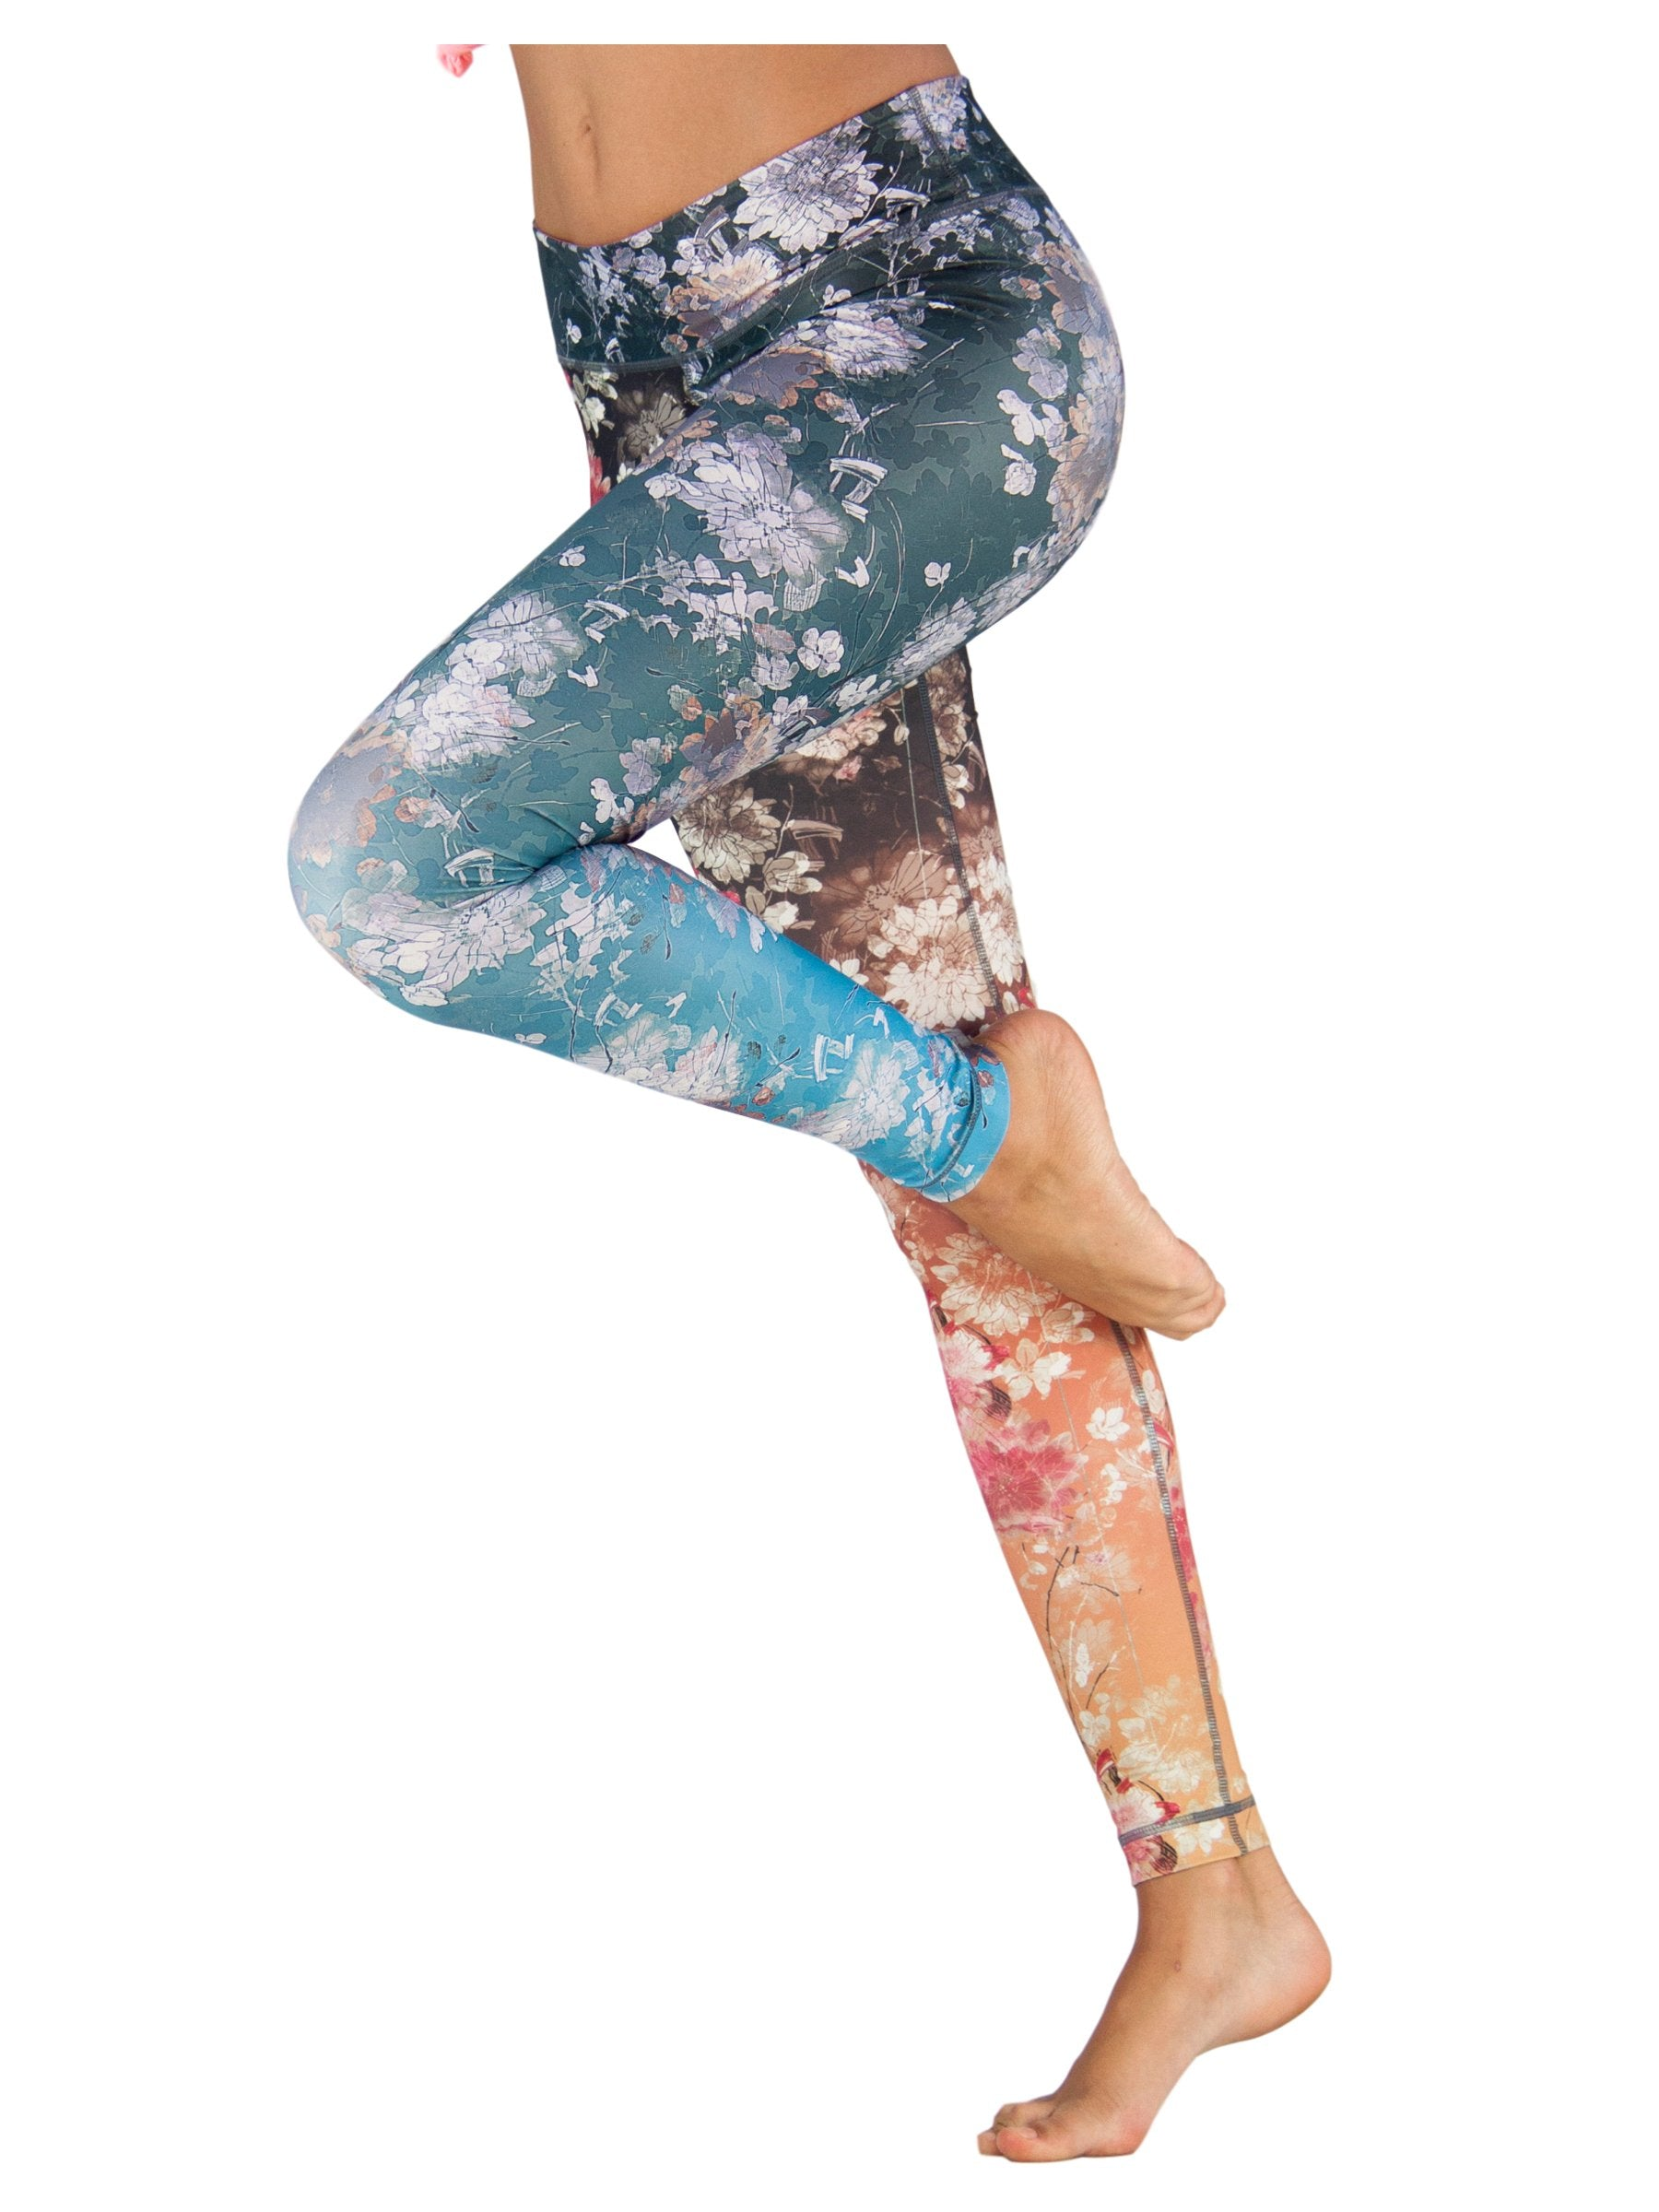 Summerbreeze by Niyama - High Quality, Yoga Legging for Movement Artists.